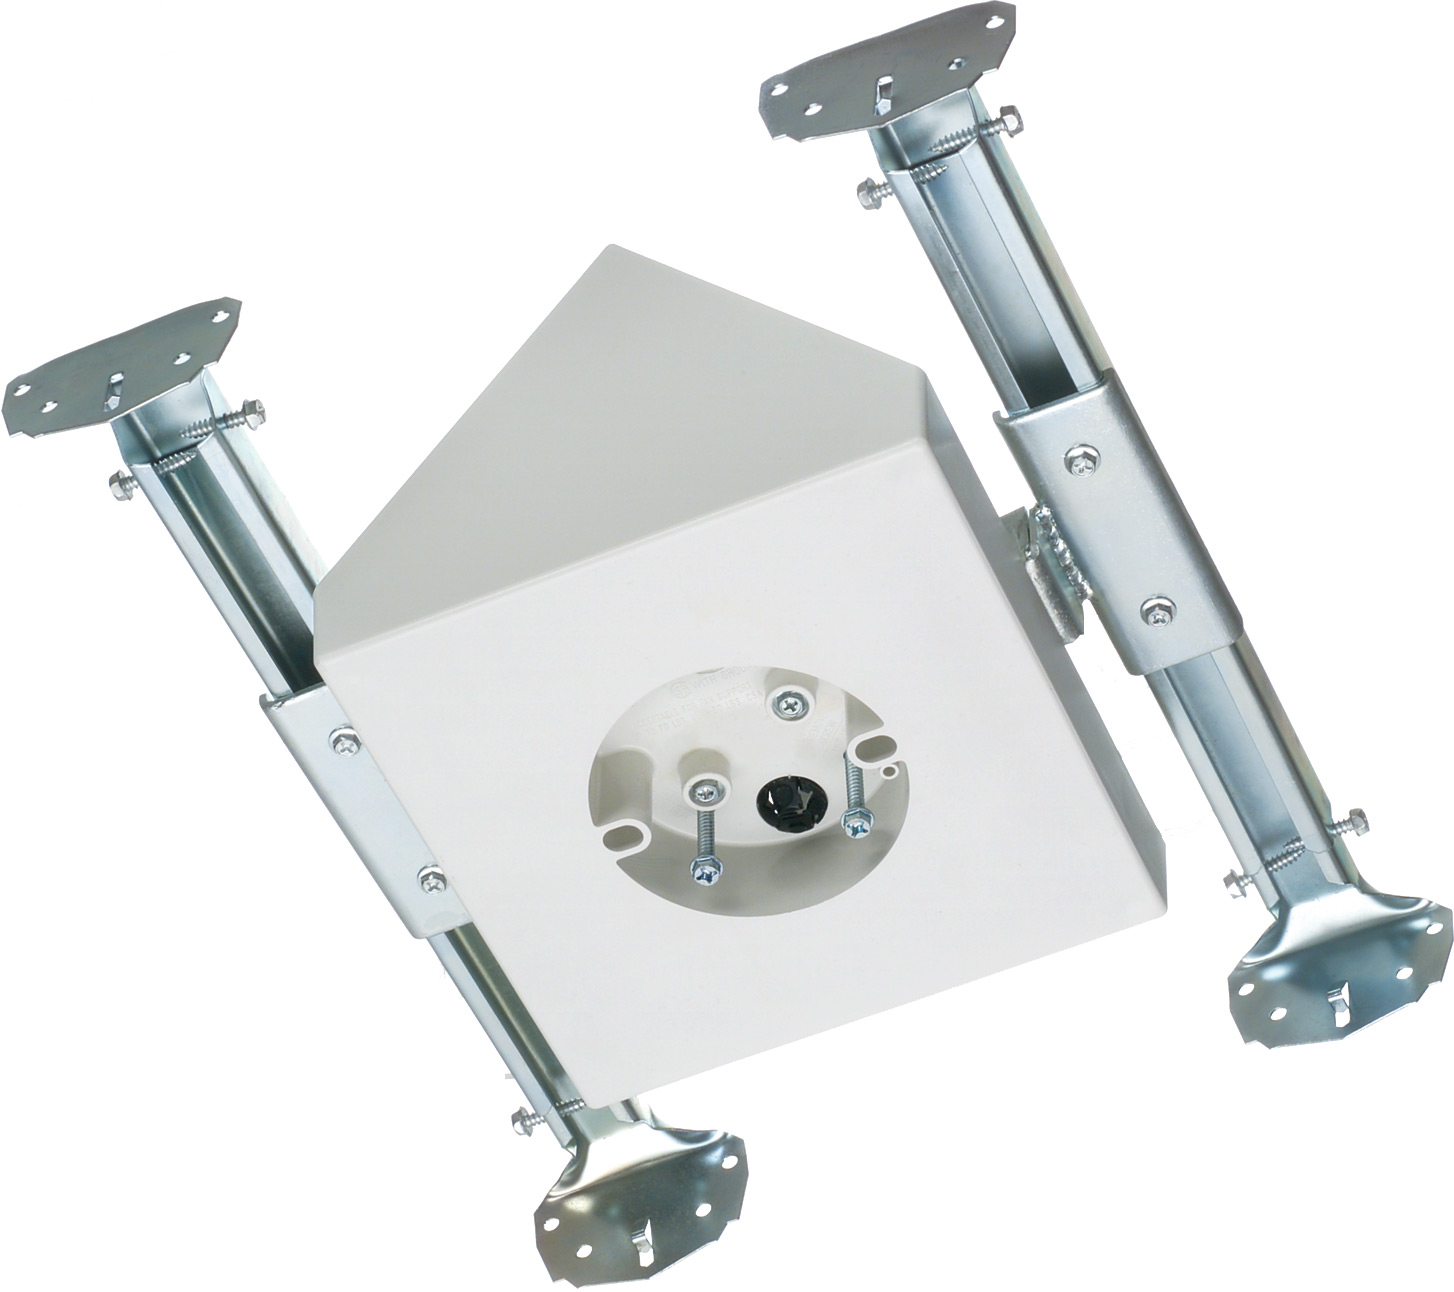 ARL FBX900 8.00 X 6.36IN SCREW FAN AND FIXTURE MOUNTING BOX